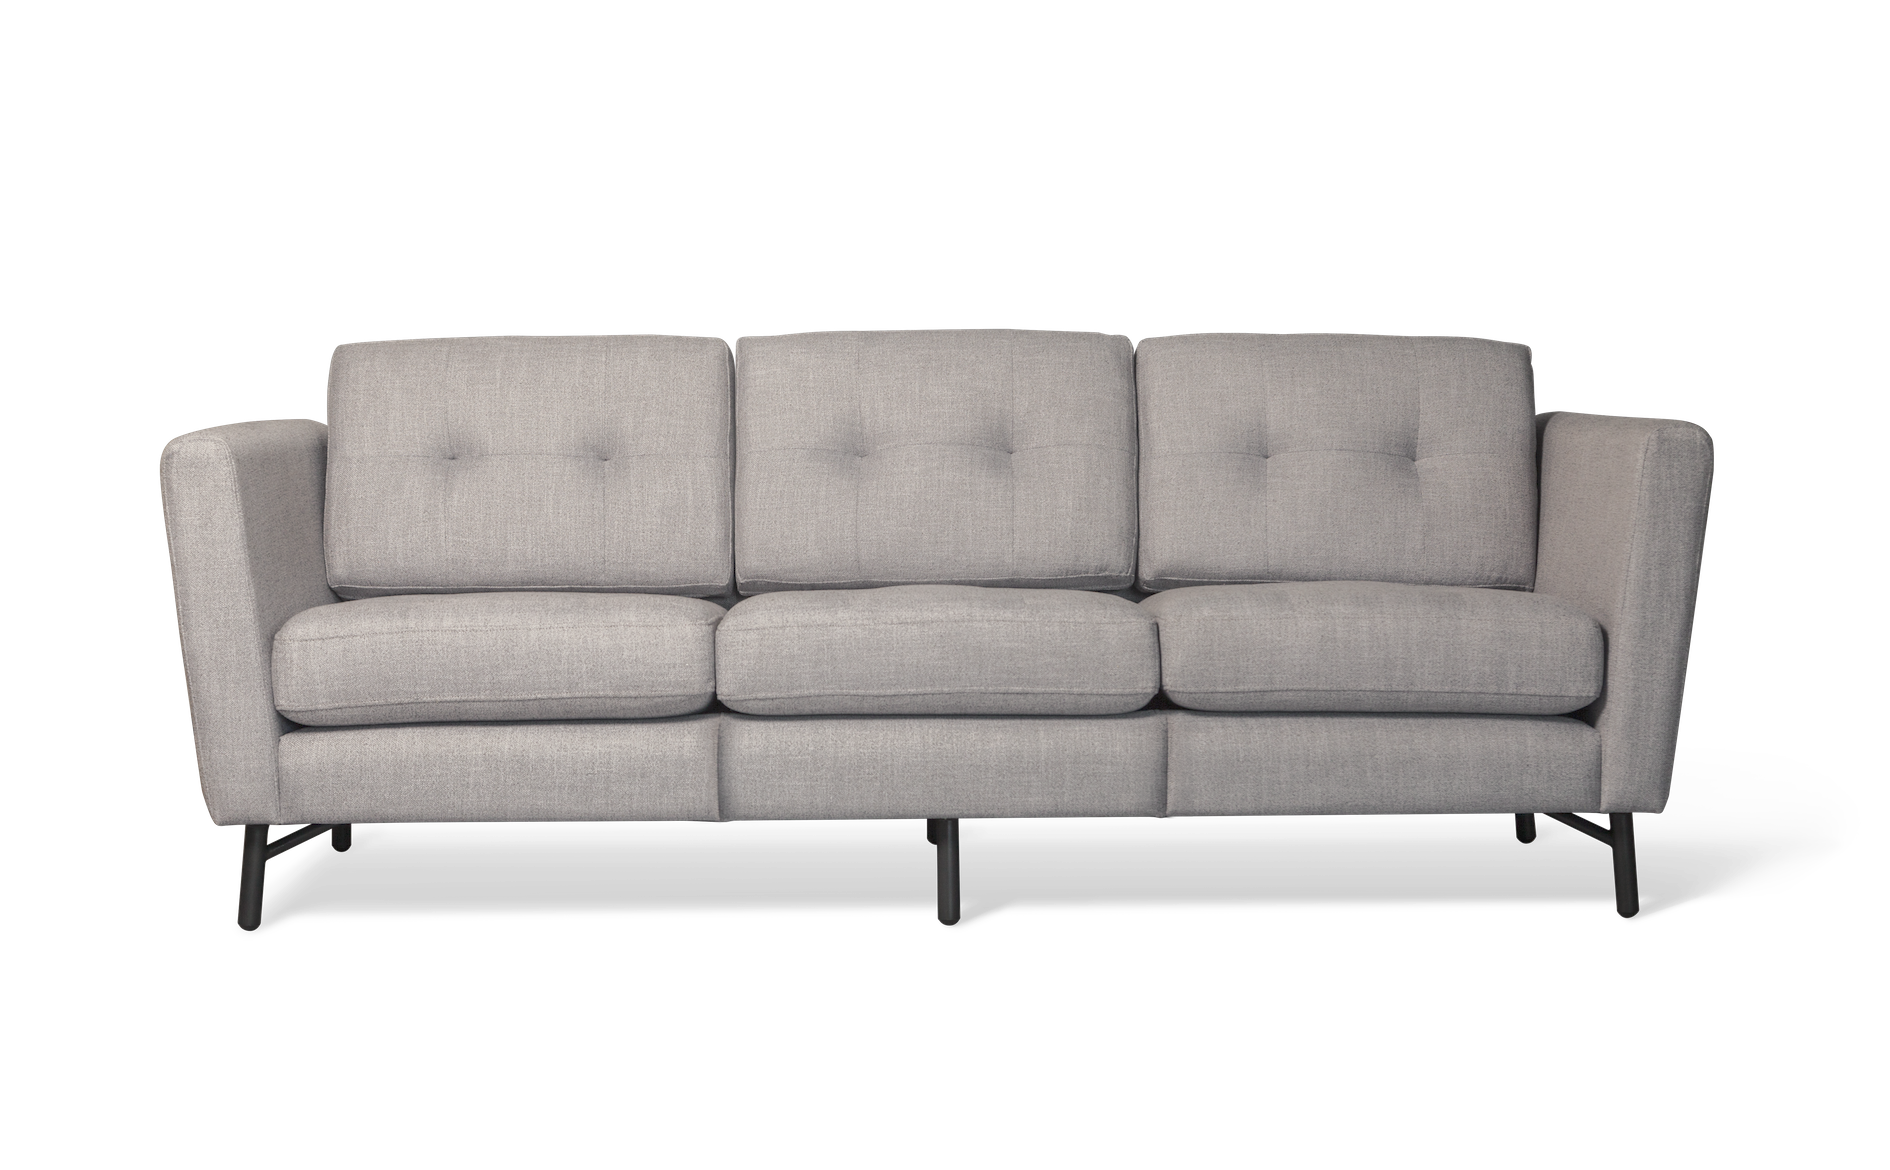 BURROW couch $895 $95 to reserve & not in stock says it